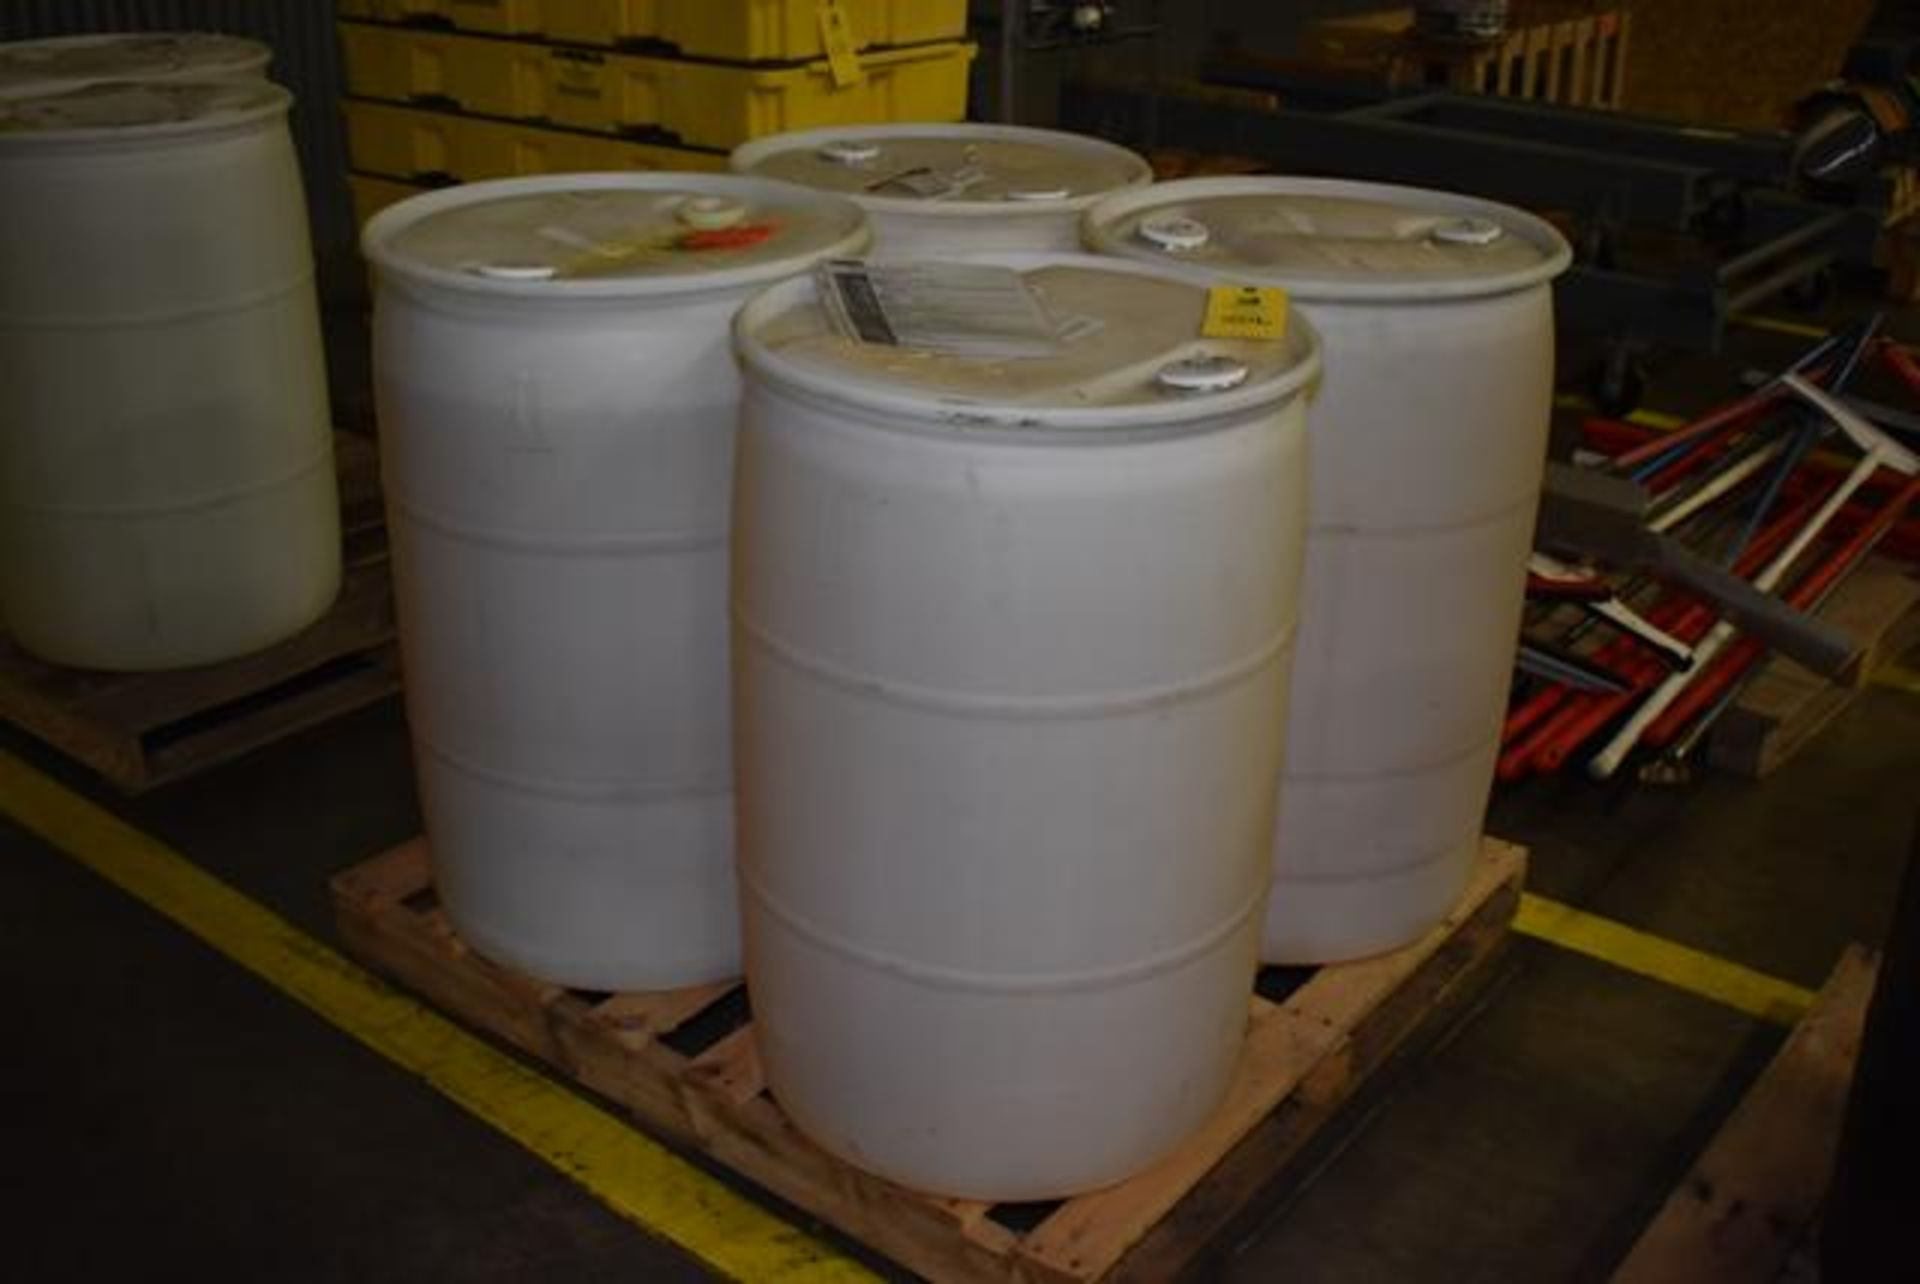 Lot 506 - Madison Chemical Aquagold 2, Liquid Detergent, (4) Drums, Loading Fee: $100